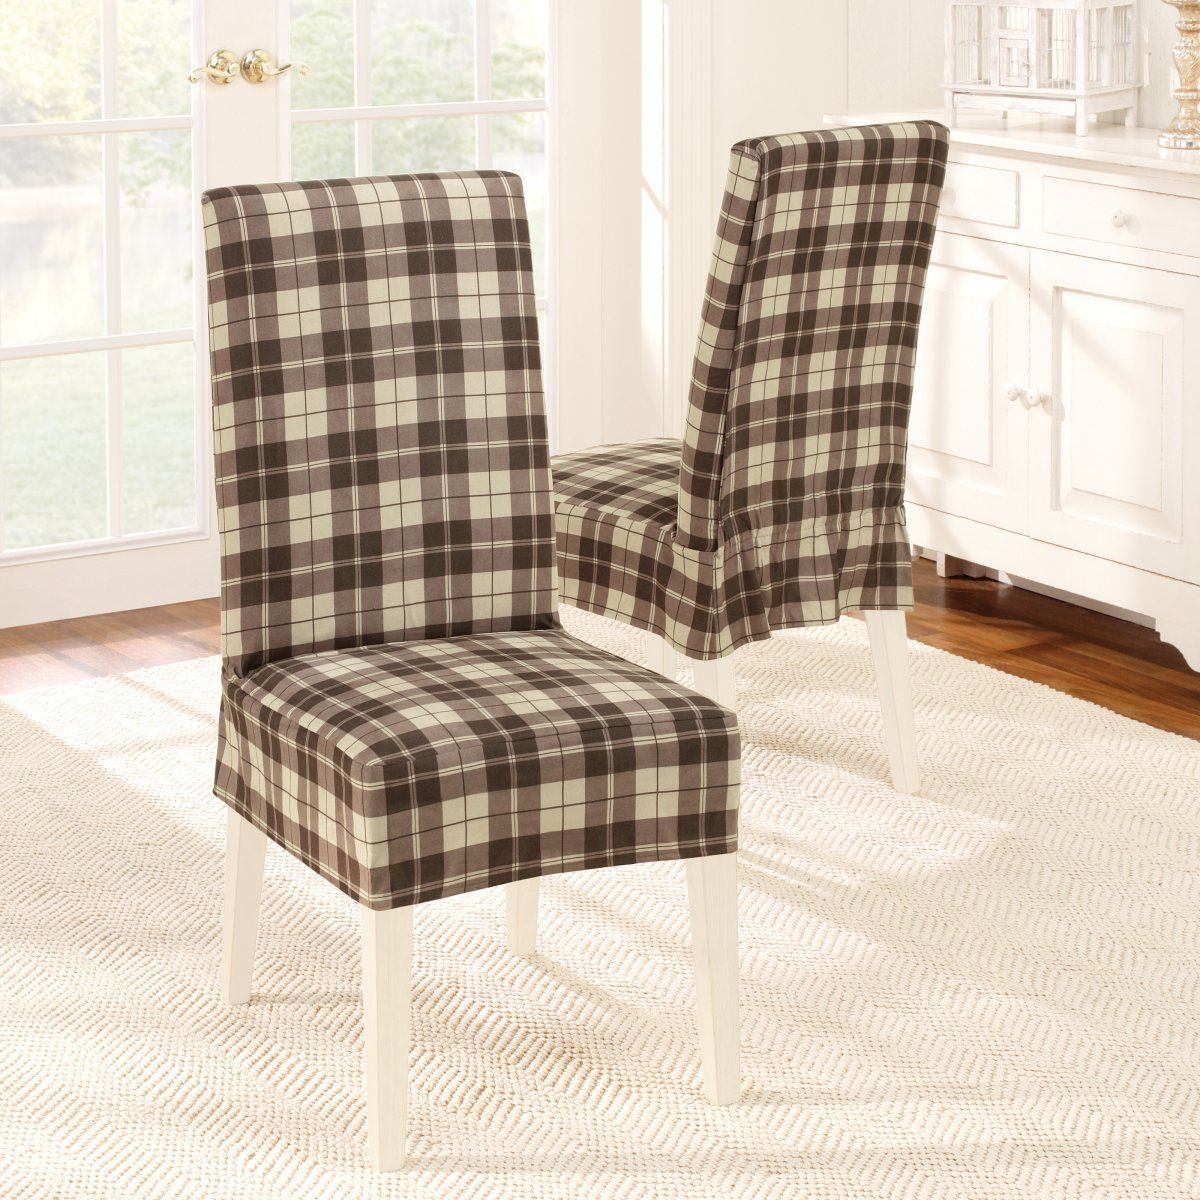 12 Beautiful Dining Chair Slipcover Design Ideas Appealing Brown Tartan Plaid Pattern Inspiration Offering C